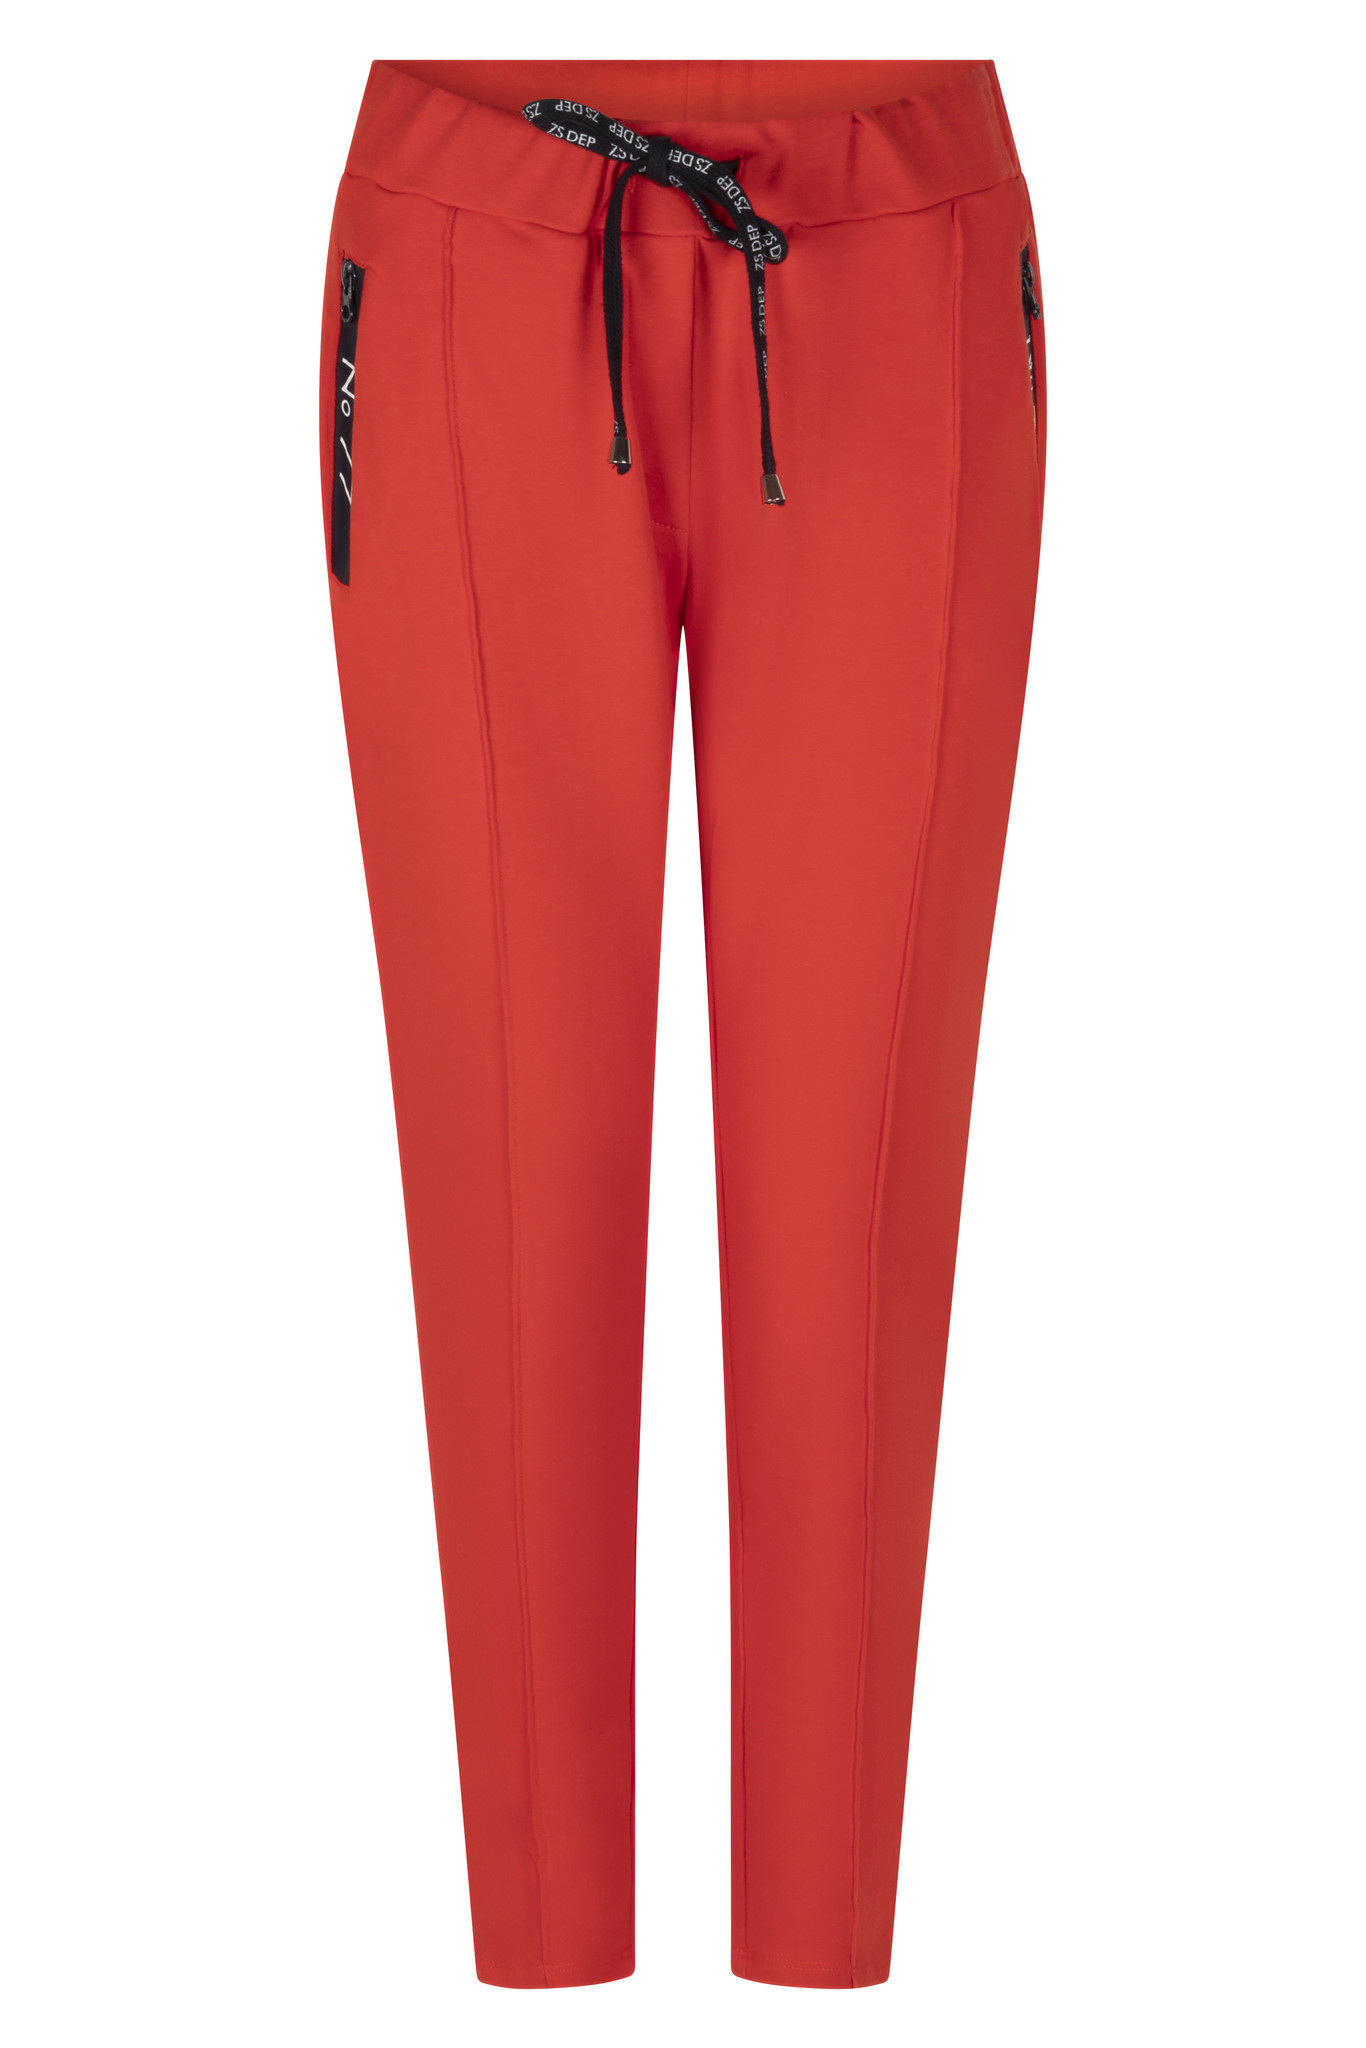 Zoso Zoso Hope broek with techzippers Summer red